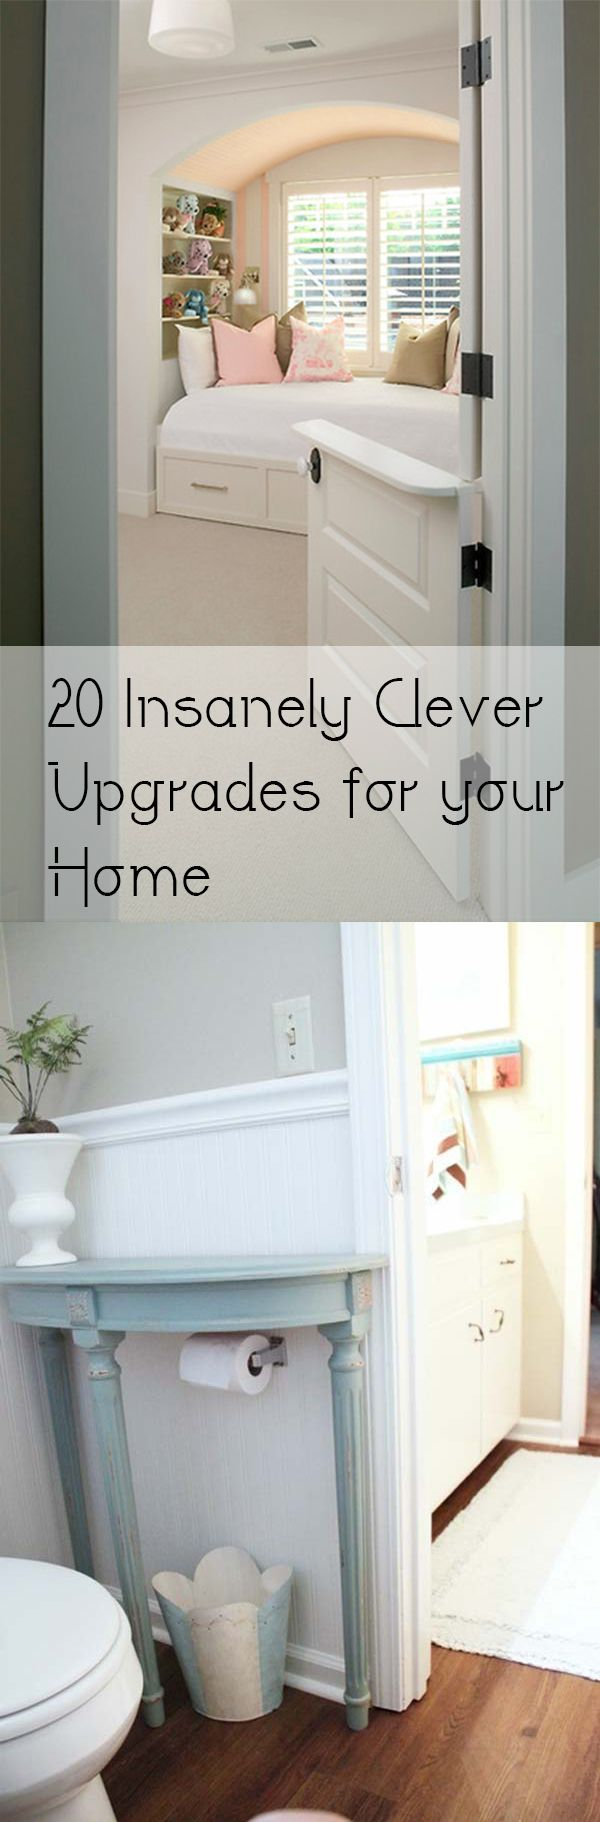 20 Insanely Clever DIY Home Projects for Your Home | Pinterest ...